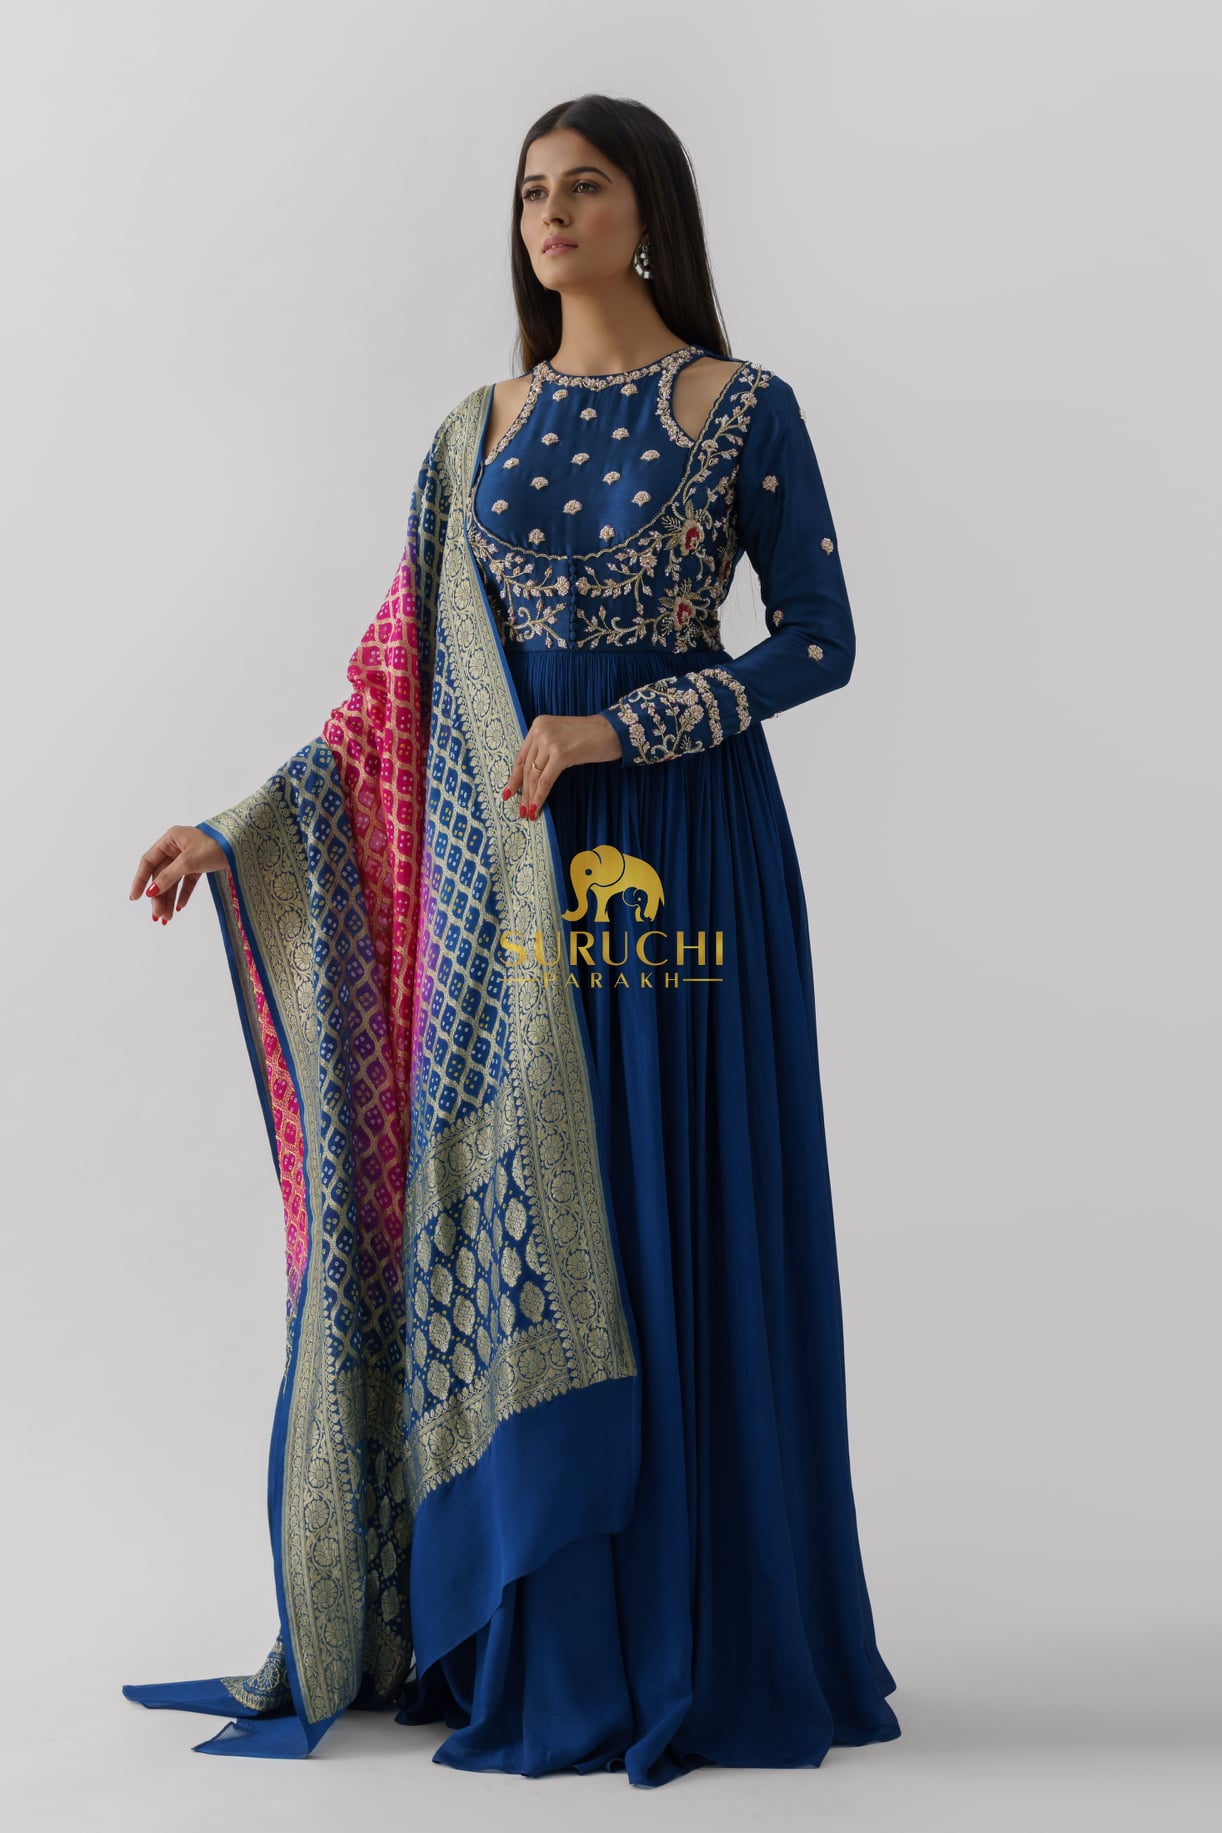 Stunning blue color floor length cold shoulder long frock with benarasi dupatta. Long frock with hand embroidery work.  2021-09-21